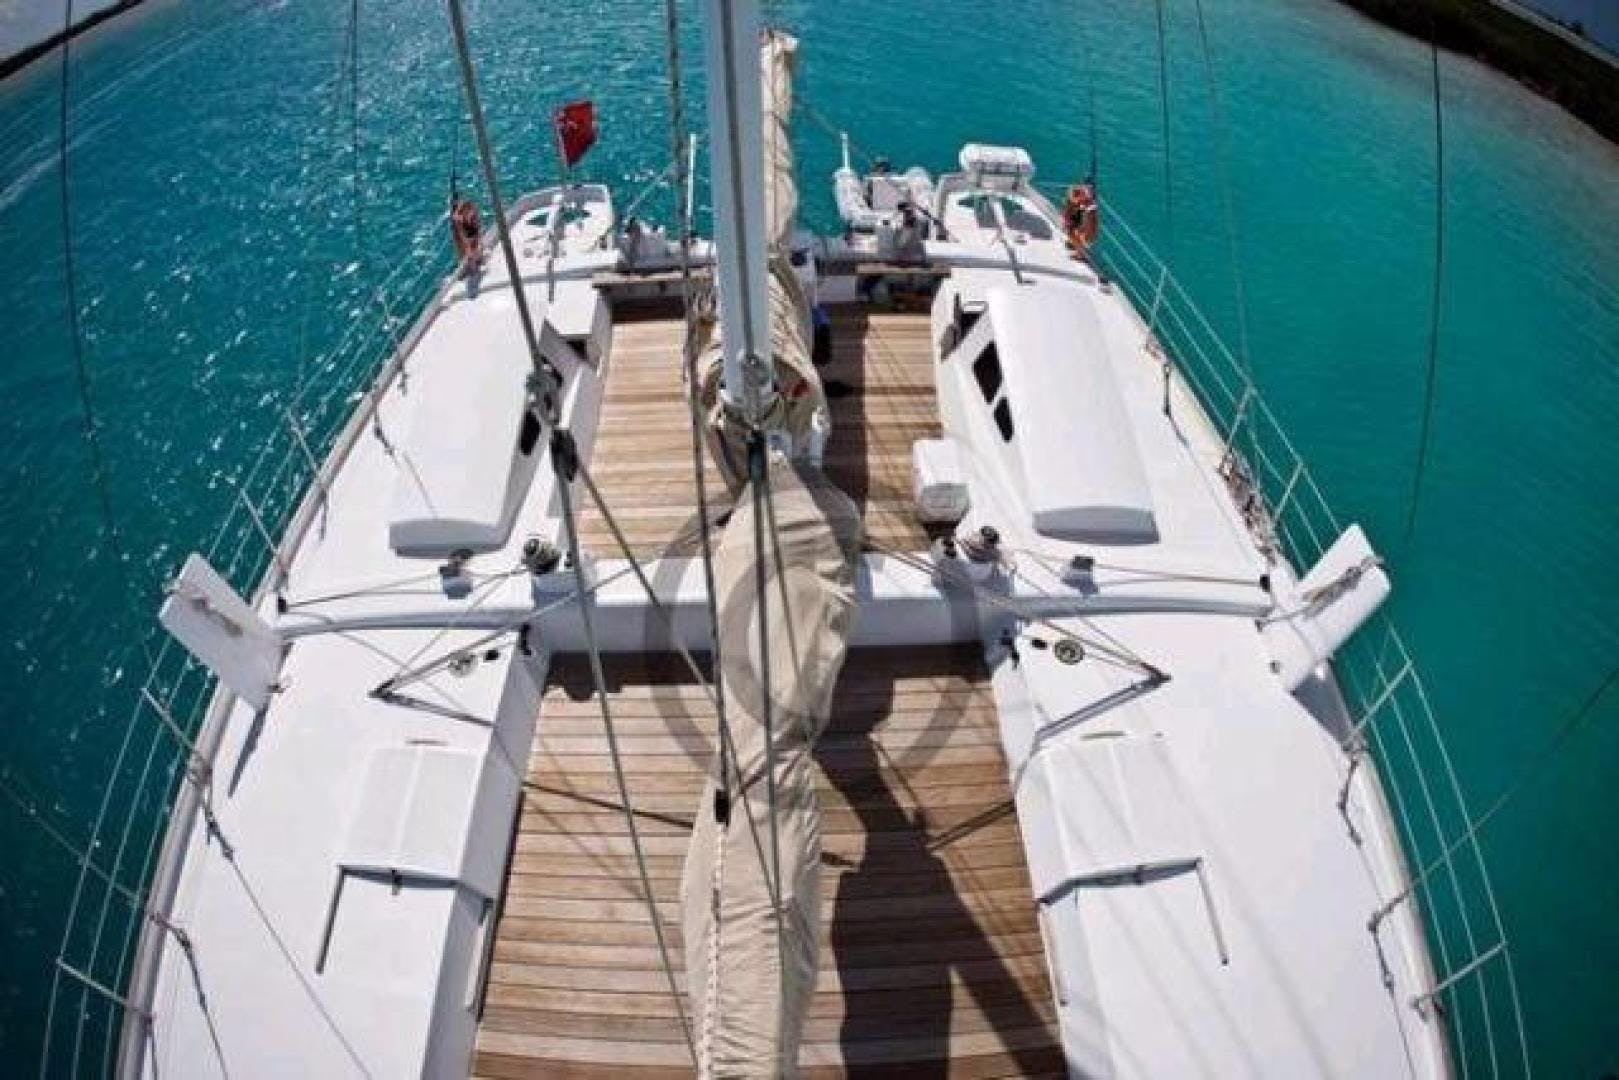 2008 Constellation Yachts 64' Gaff Rigged Schooner 64 SANDPIPER 1 | Picture 8 of 13